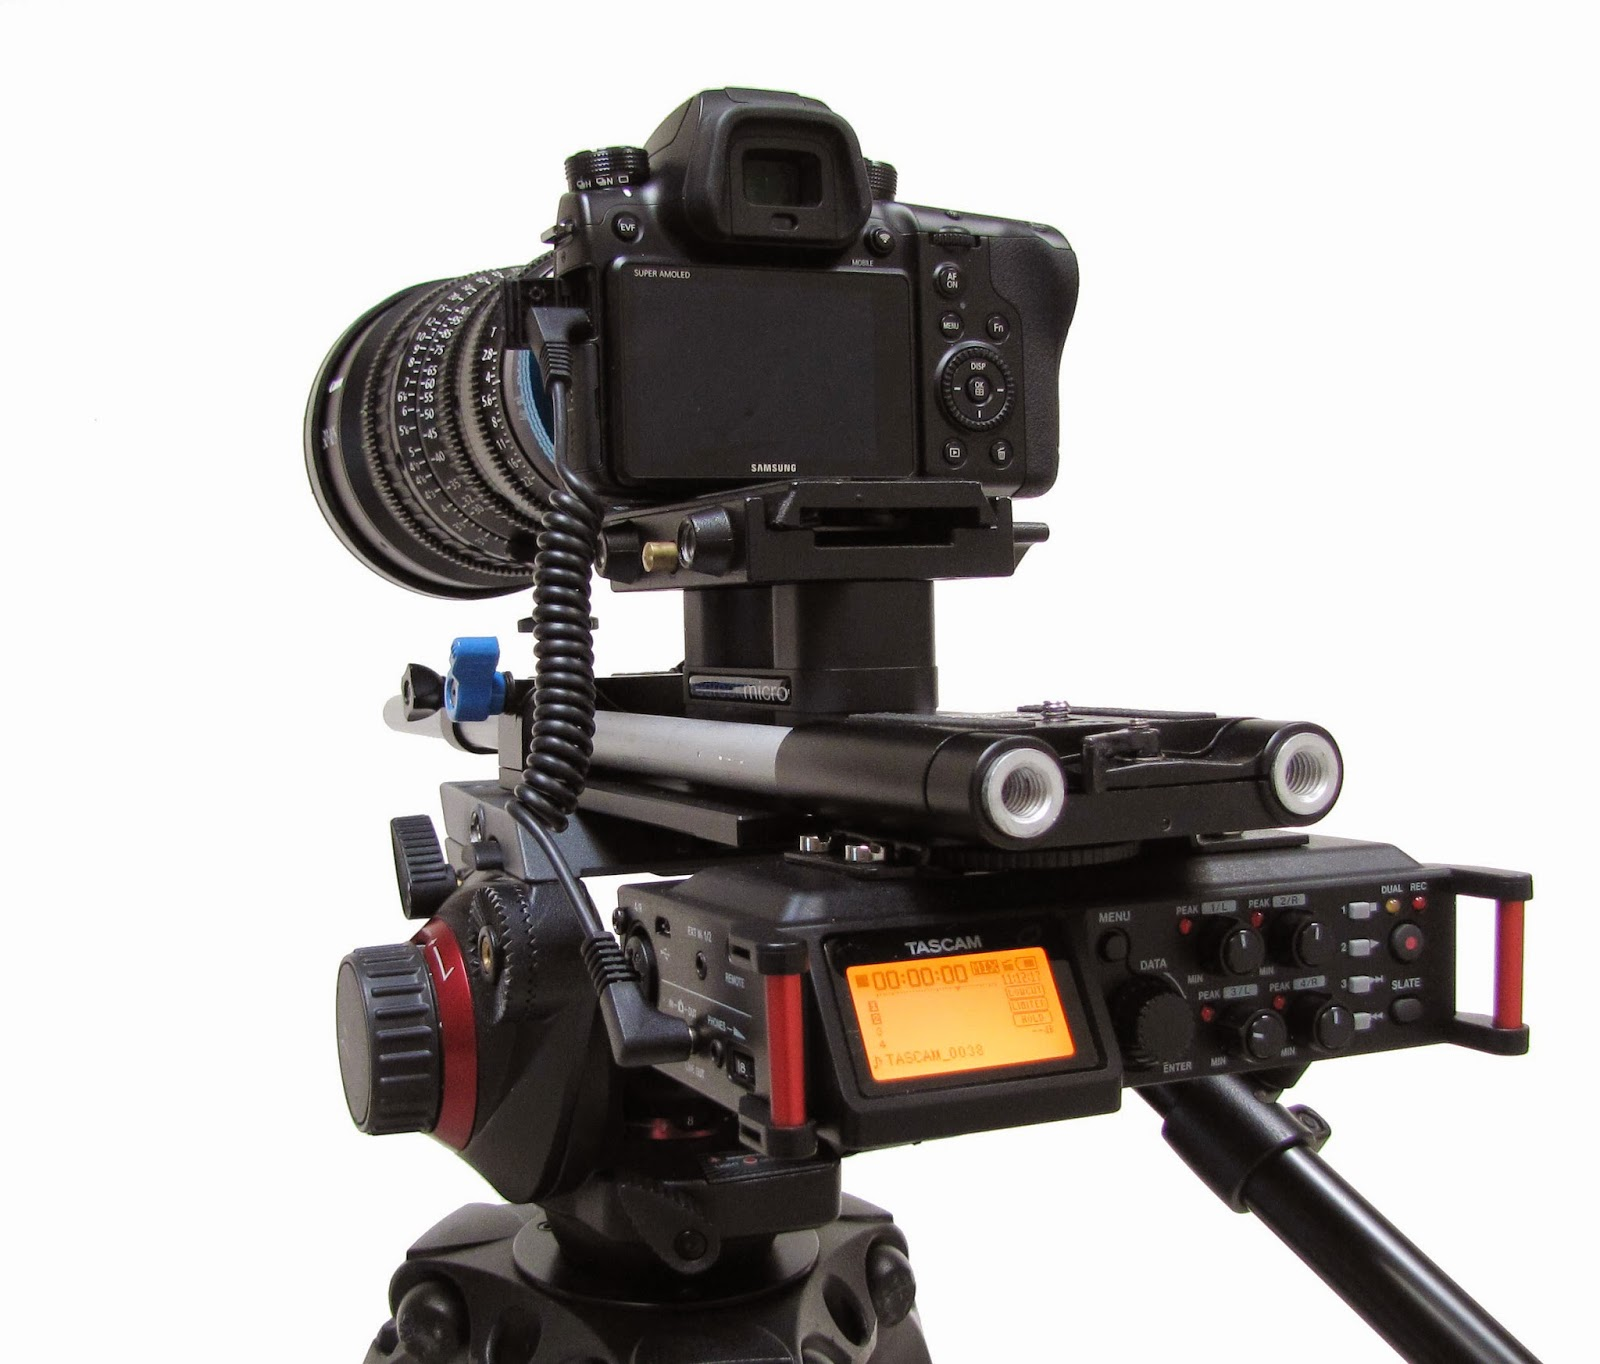 Tascam DR 70D rigged on rails to counter balance and easy viewing meters